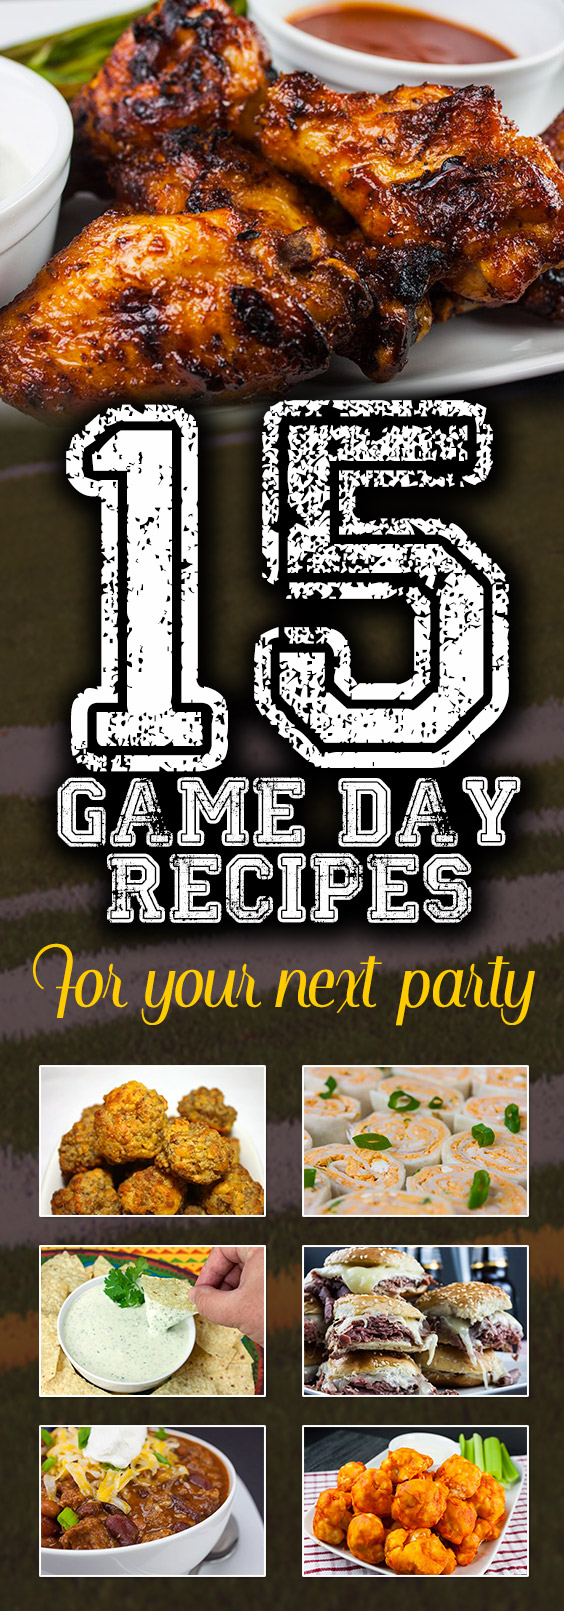 15 Crowd-Pleasing Game Day Recipes For Your Next Party - Have a party happening but not quite sure what to make? Check this out! #recipes #appetizers #gameday #tailgate #tailgateparty #tailgatefood